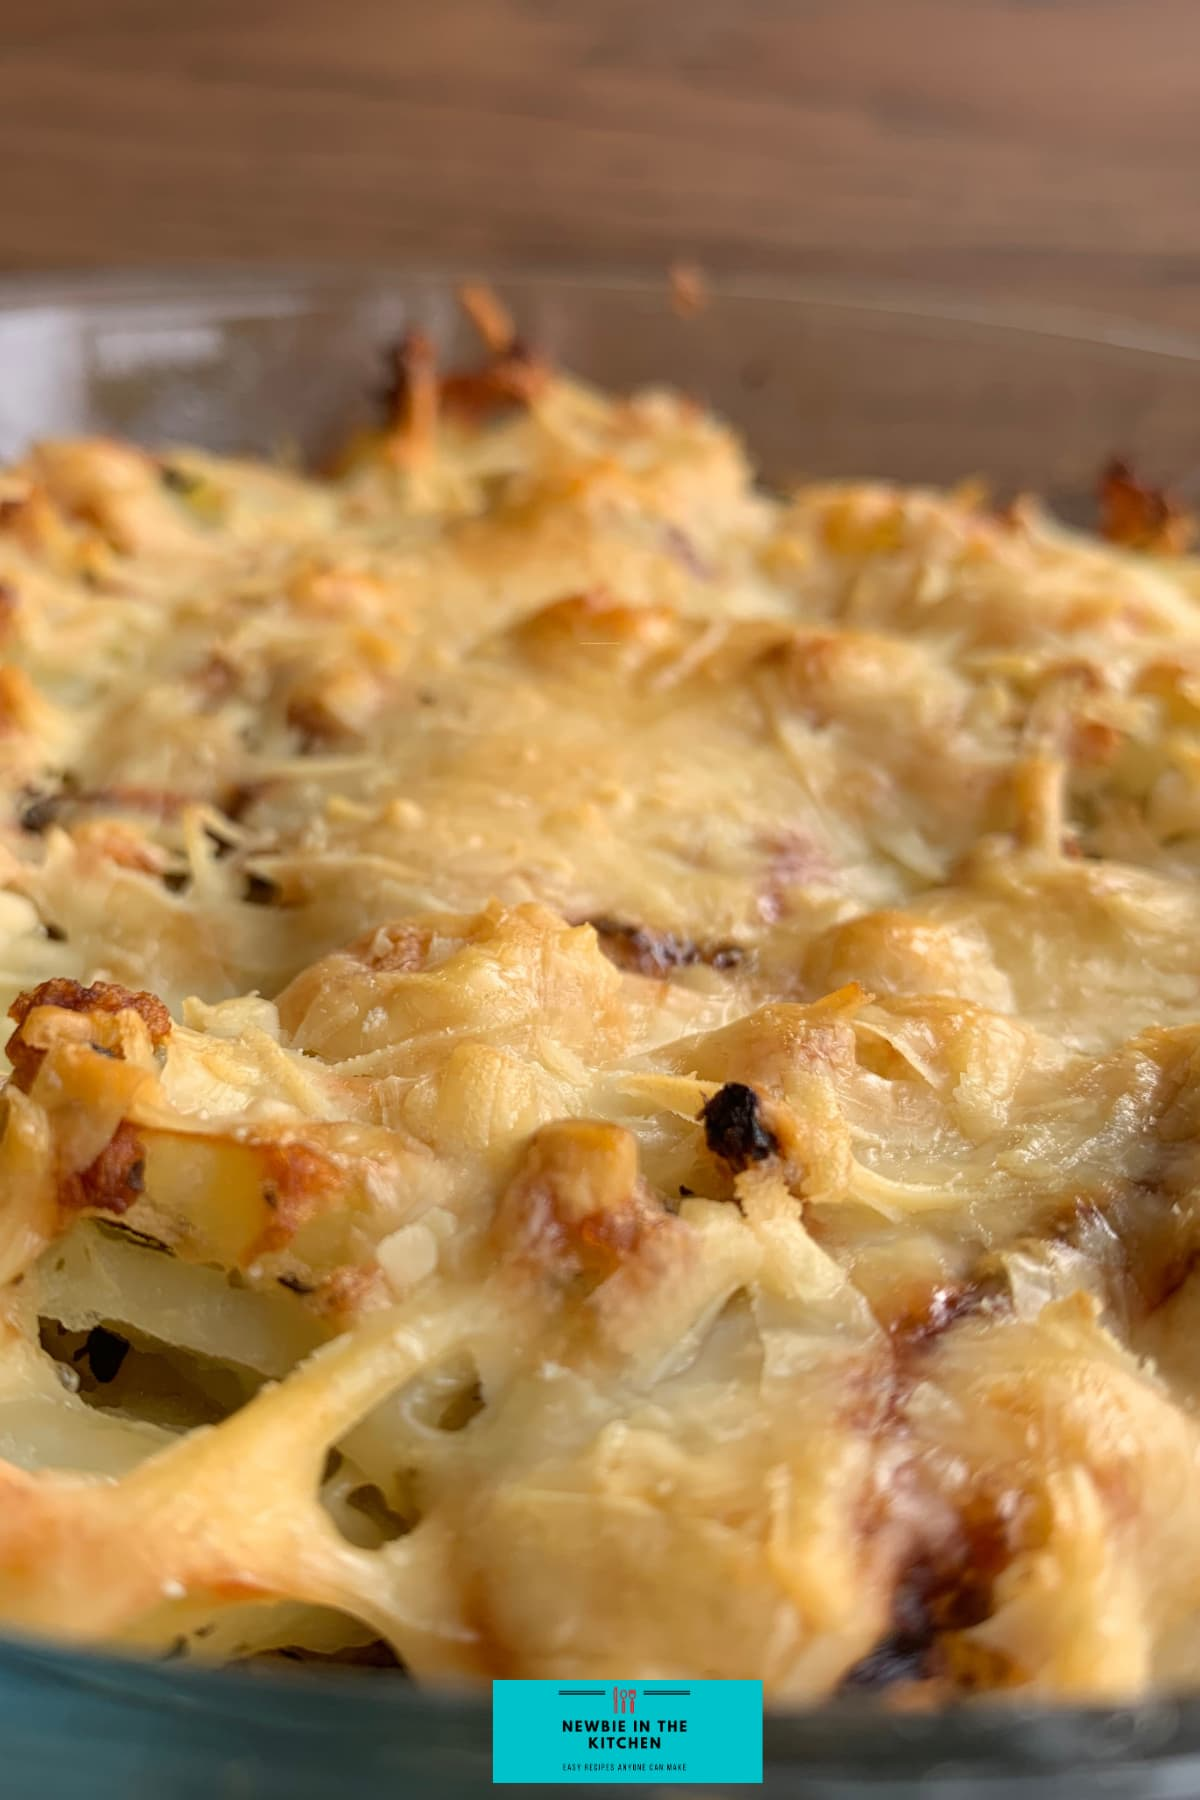 Cheesy Oven-Baked Garlic Potatoes. A simple, easy side dish recipe, with fluffy potatoes, cheese, and onions, baked in a tasty garlic and herb mix. The perfect cheesy potato bake!